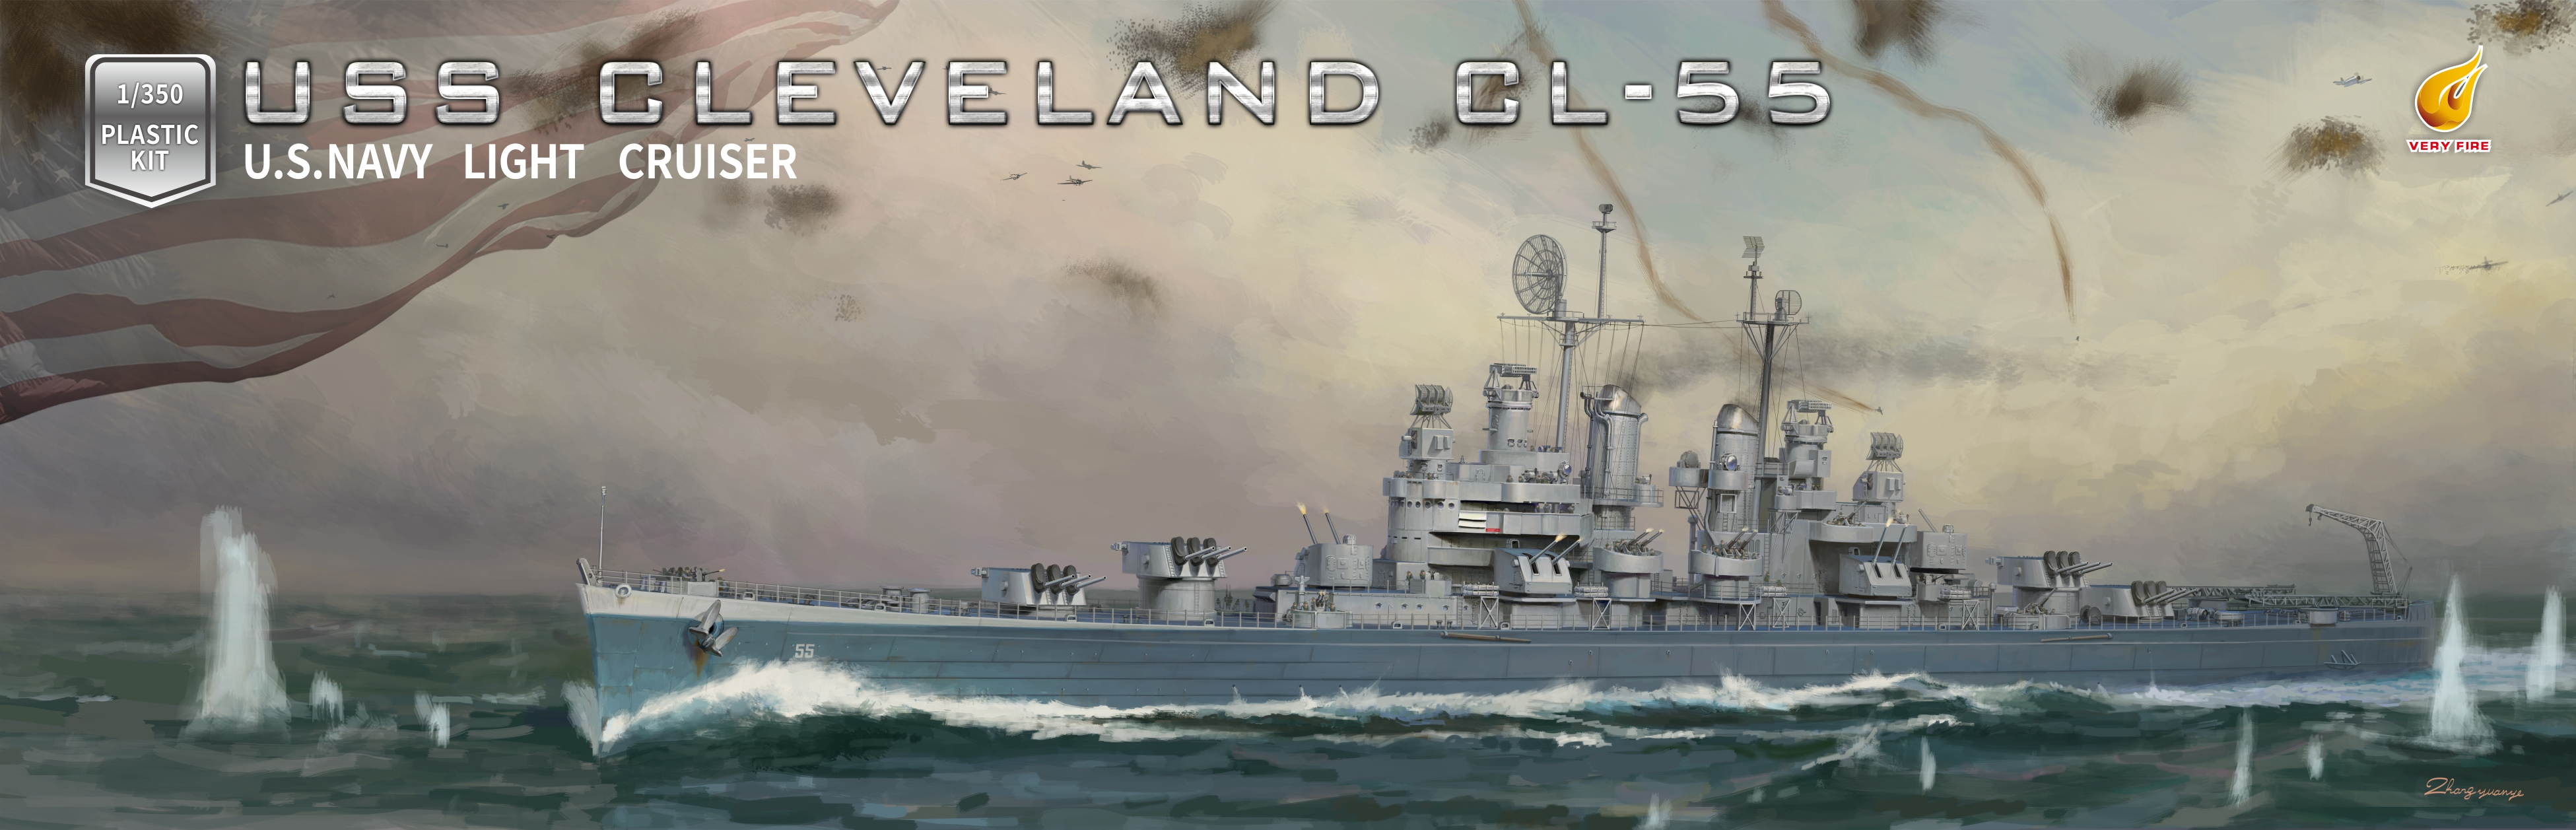 Very Fire 1/350 USS Cleveland CL-55